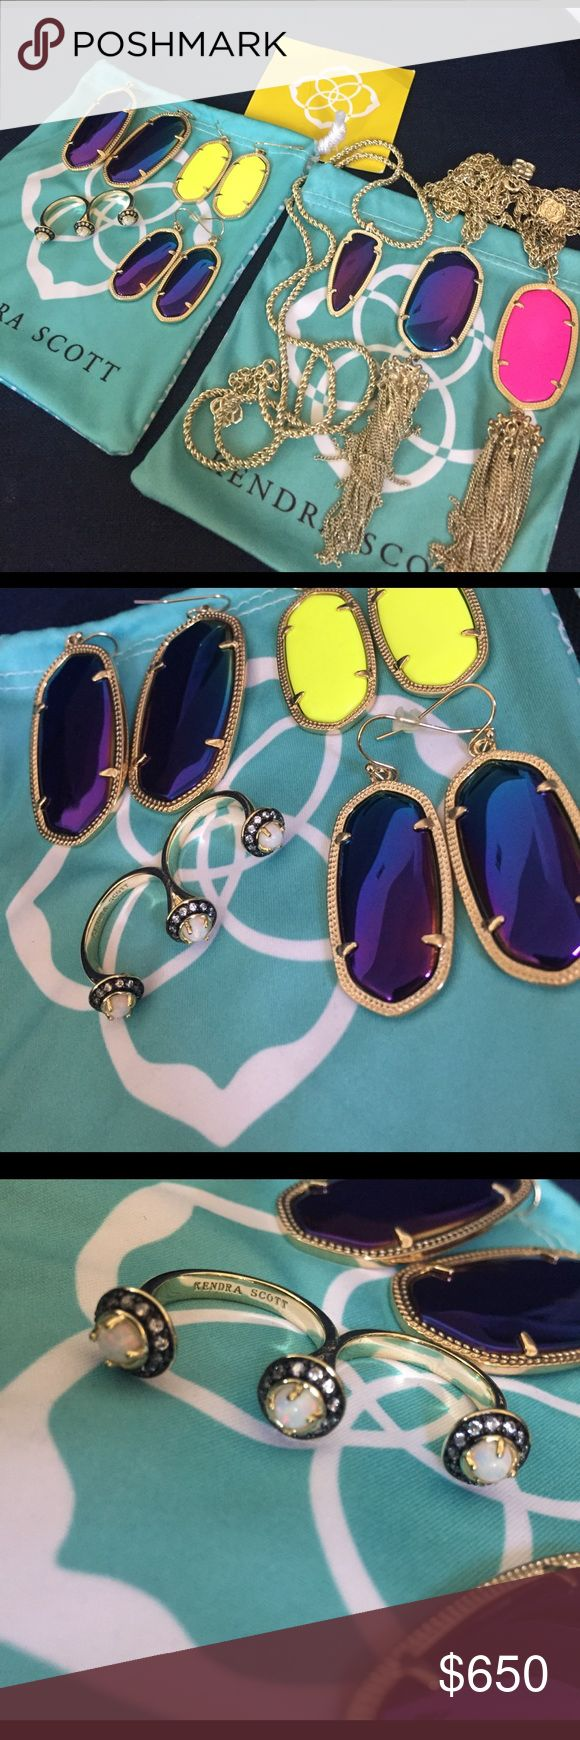 Kendra Scott Bundle - Terrific&New Condition I fell in love with KS and purchased many pieces but seem to be allergic to them so have to let them go. PRICE FIRM & LOWEST NOW - majority are rare and hard to find. Selling as a bundle only - WILL NOT SEPARATE - PLS DONT ASK. Easier this way as I already have way too many listings 🙂 All in terrific condition. 1 Pair of Danielle-black iridescent. 2 Pairs of Elle-neon yellow & black iridescent. 1 ring with Opal stones. 1 Shaylee in black…